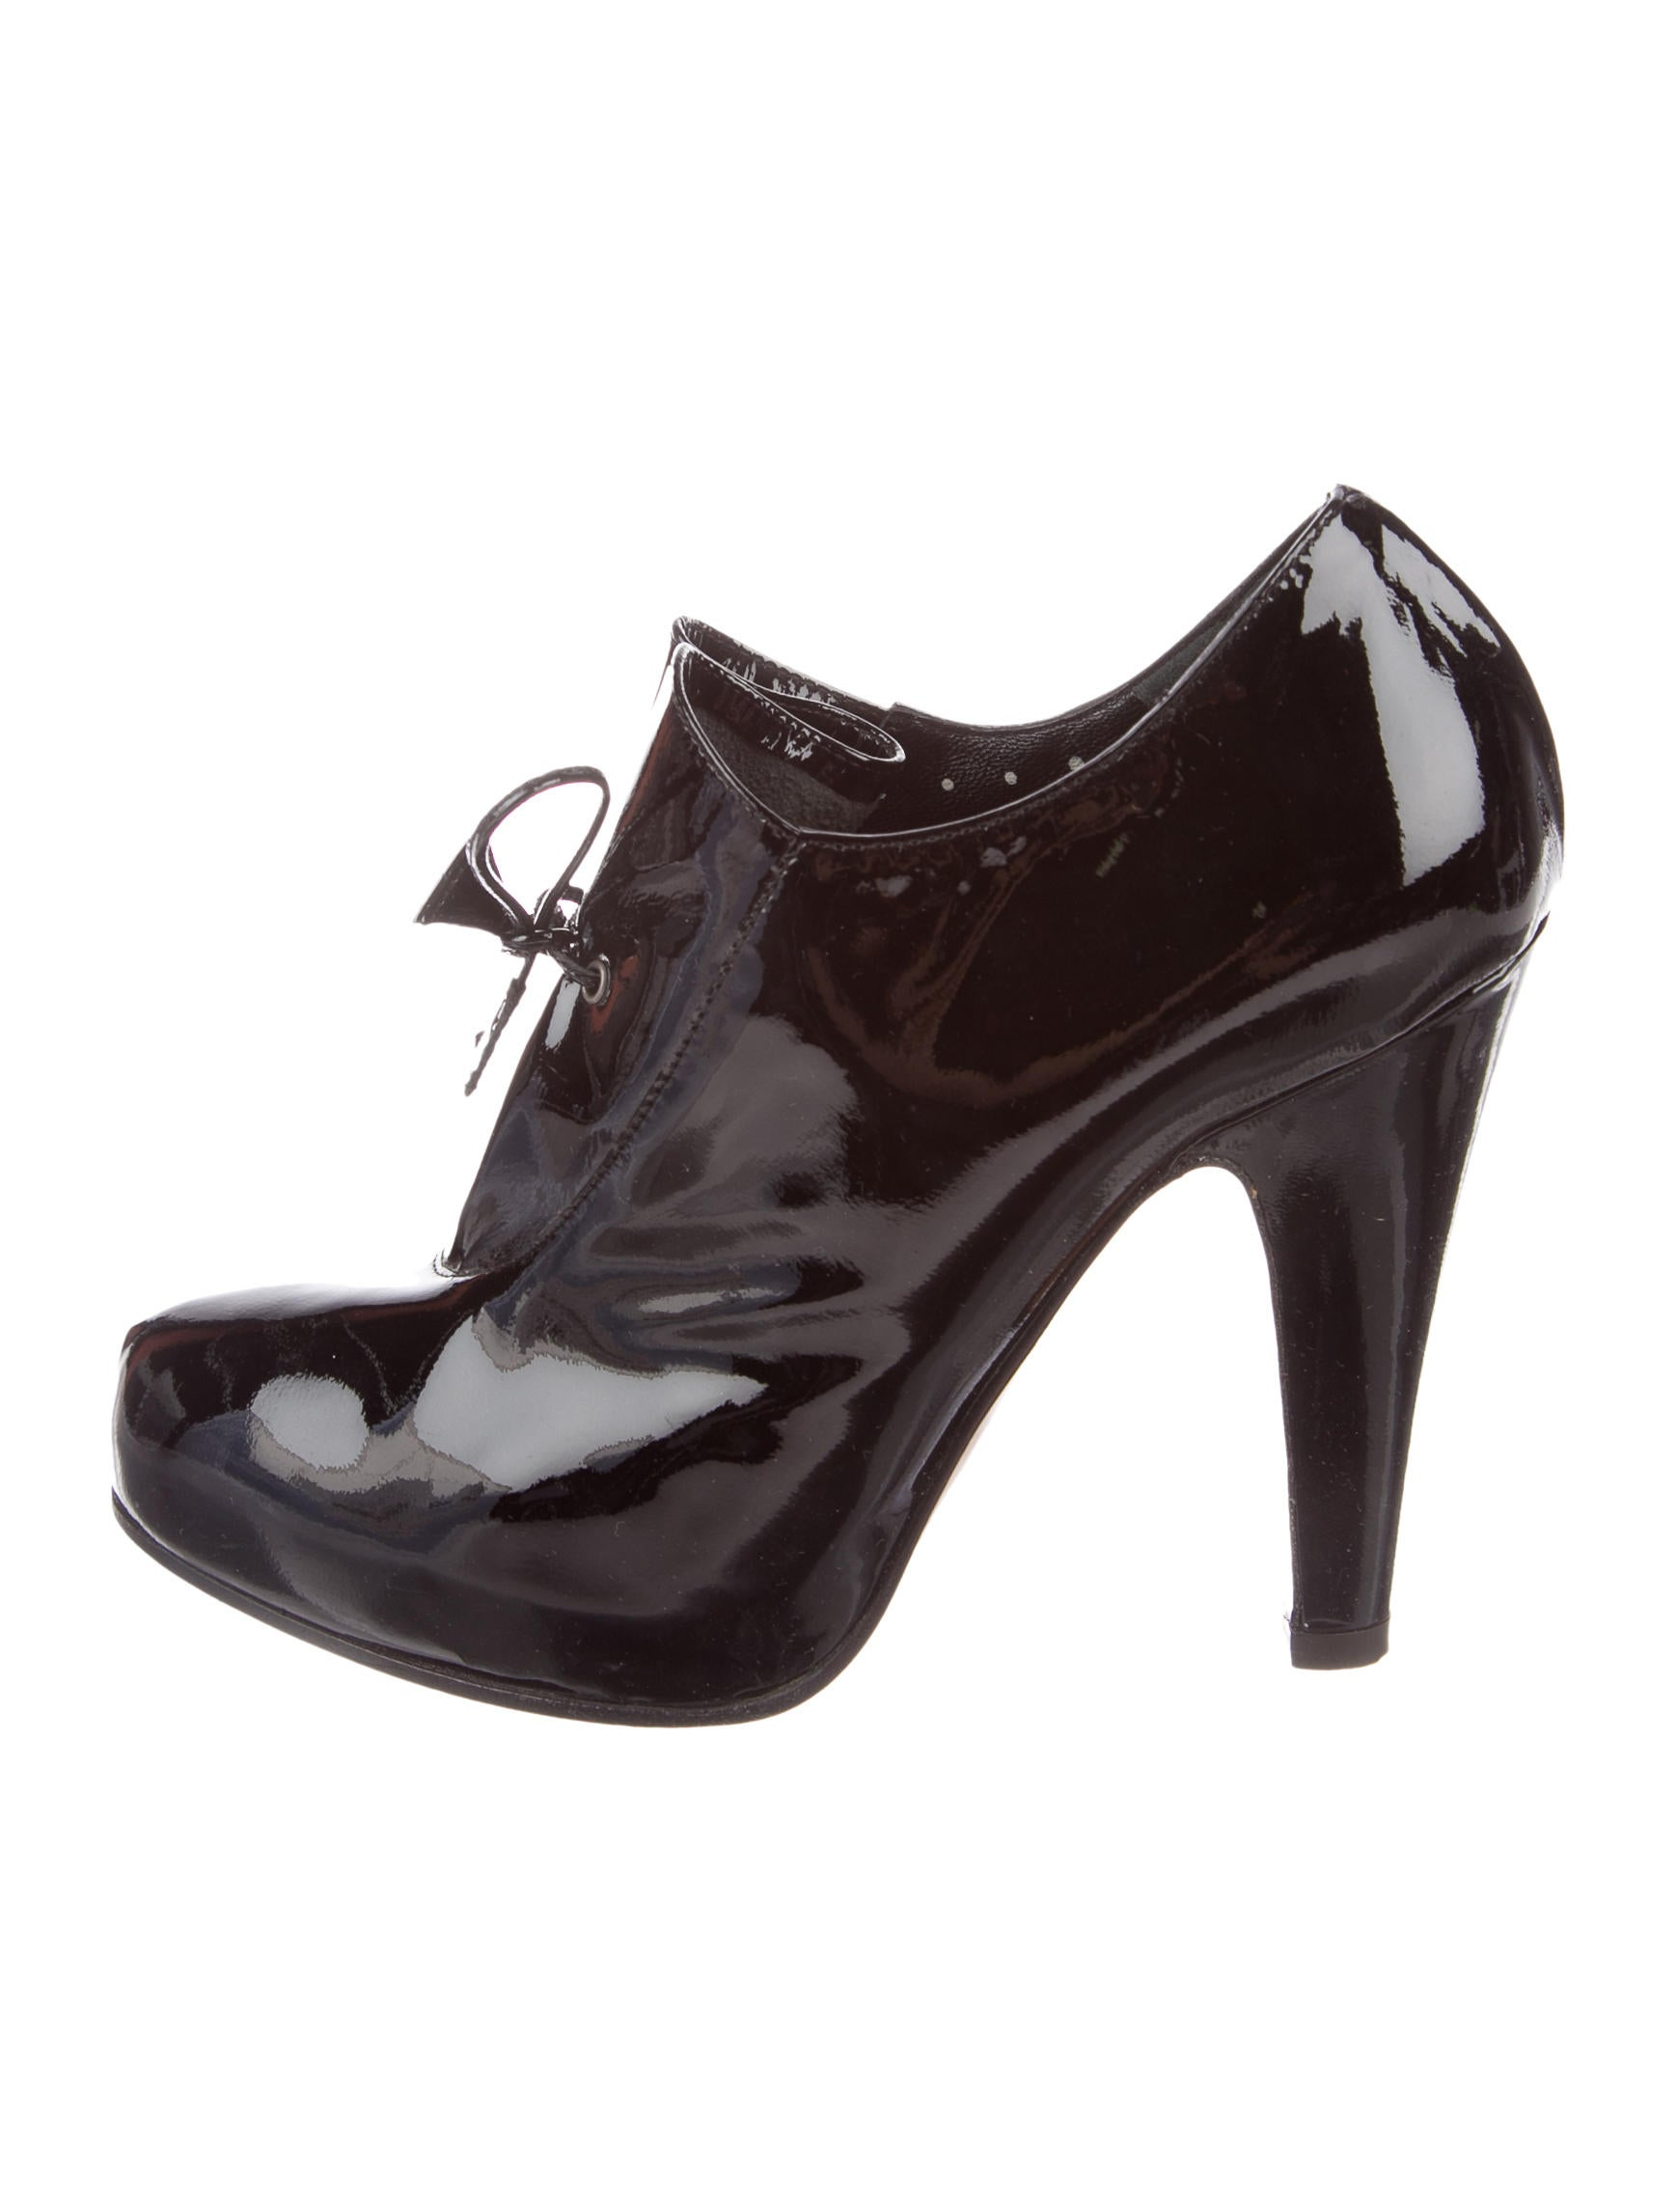 Moschino Cheap and Chic Patent Leather Round-Toe Pumps buy cheap big sale 2015 new best prices online clearance marketable cheap the cheapest aWxV3T2qe